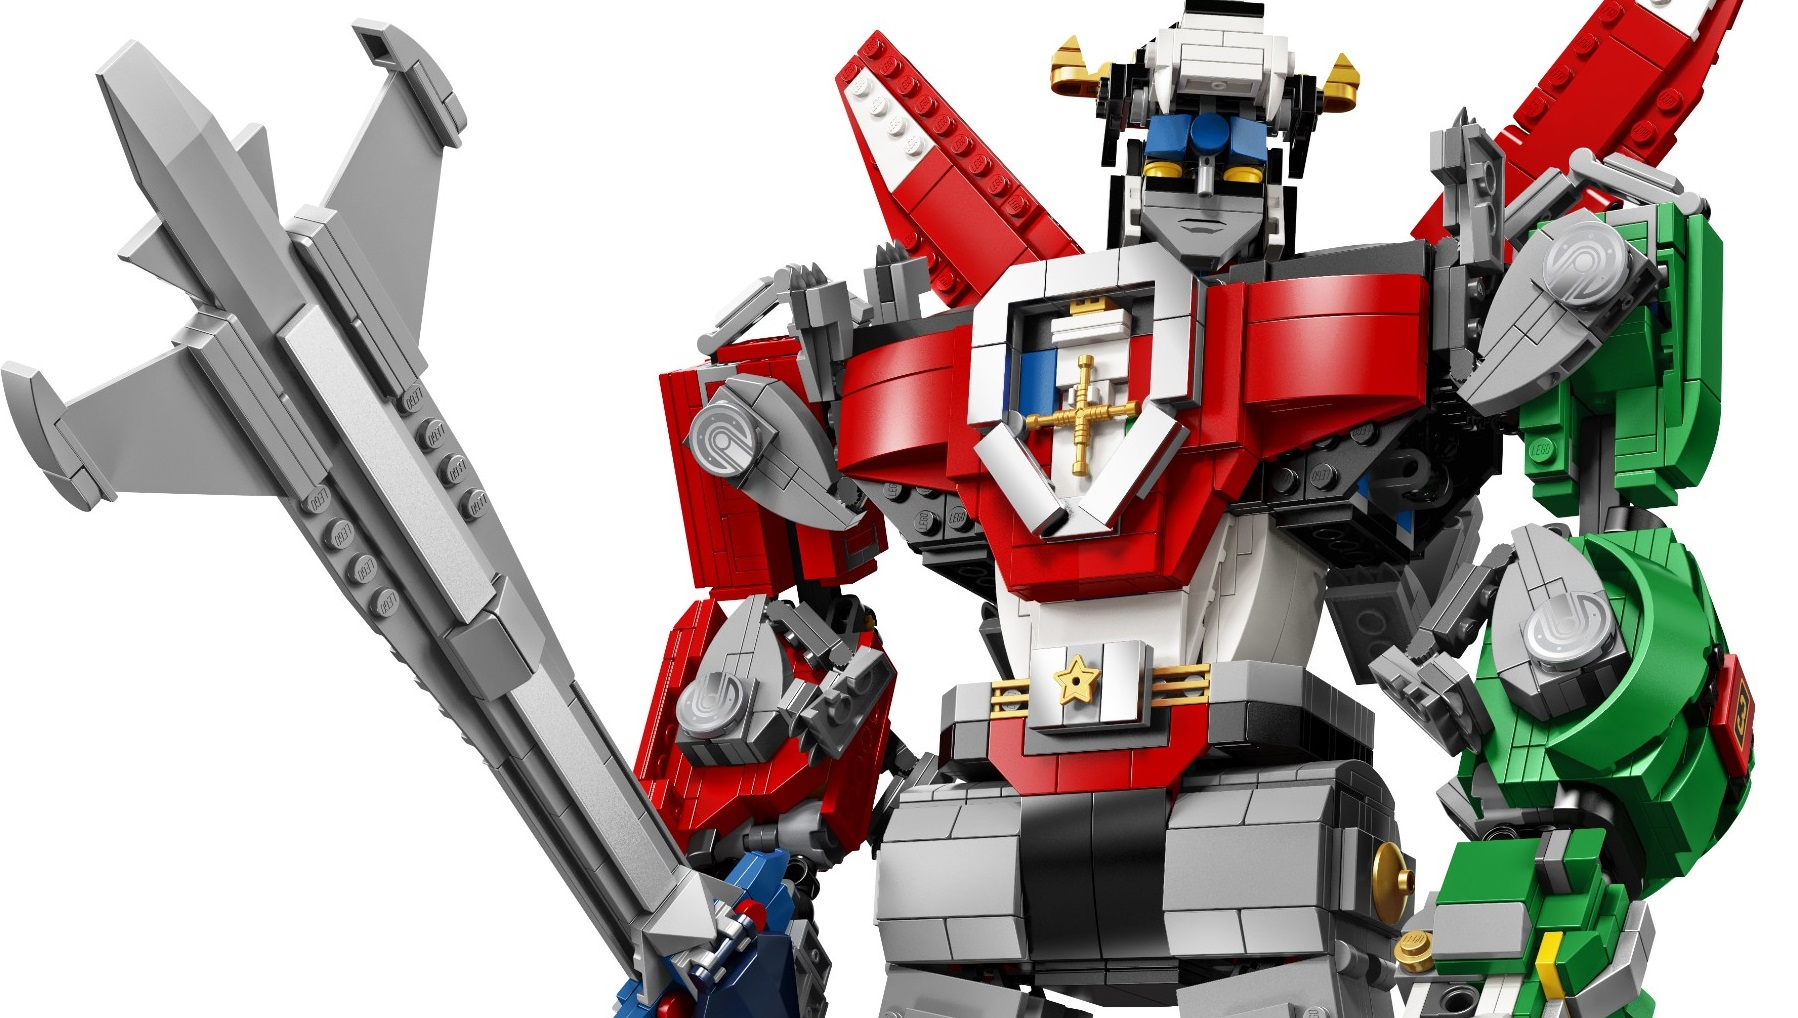 LEGO Voltron And 007 DB5 Available In SA